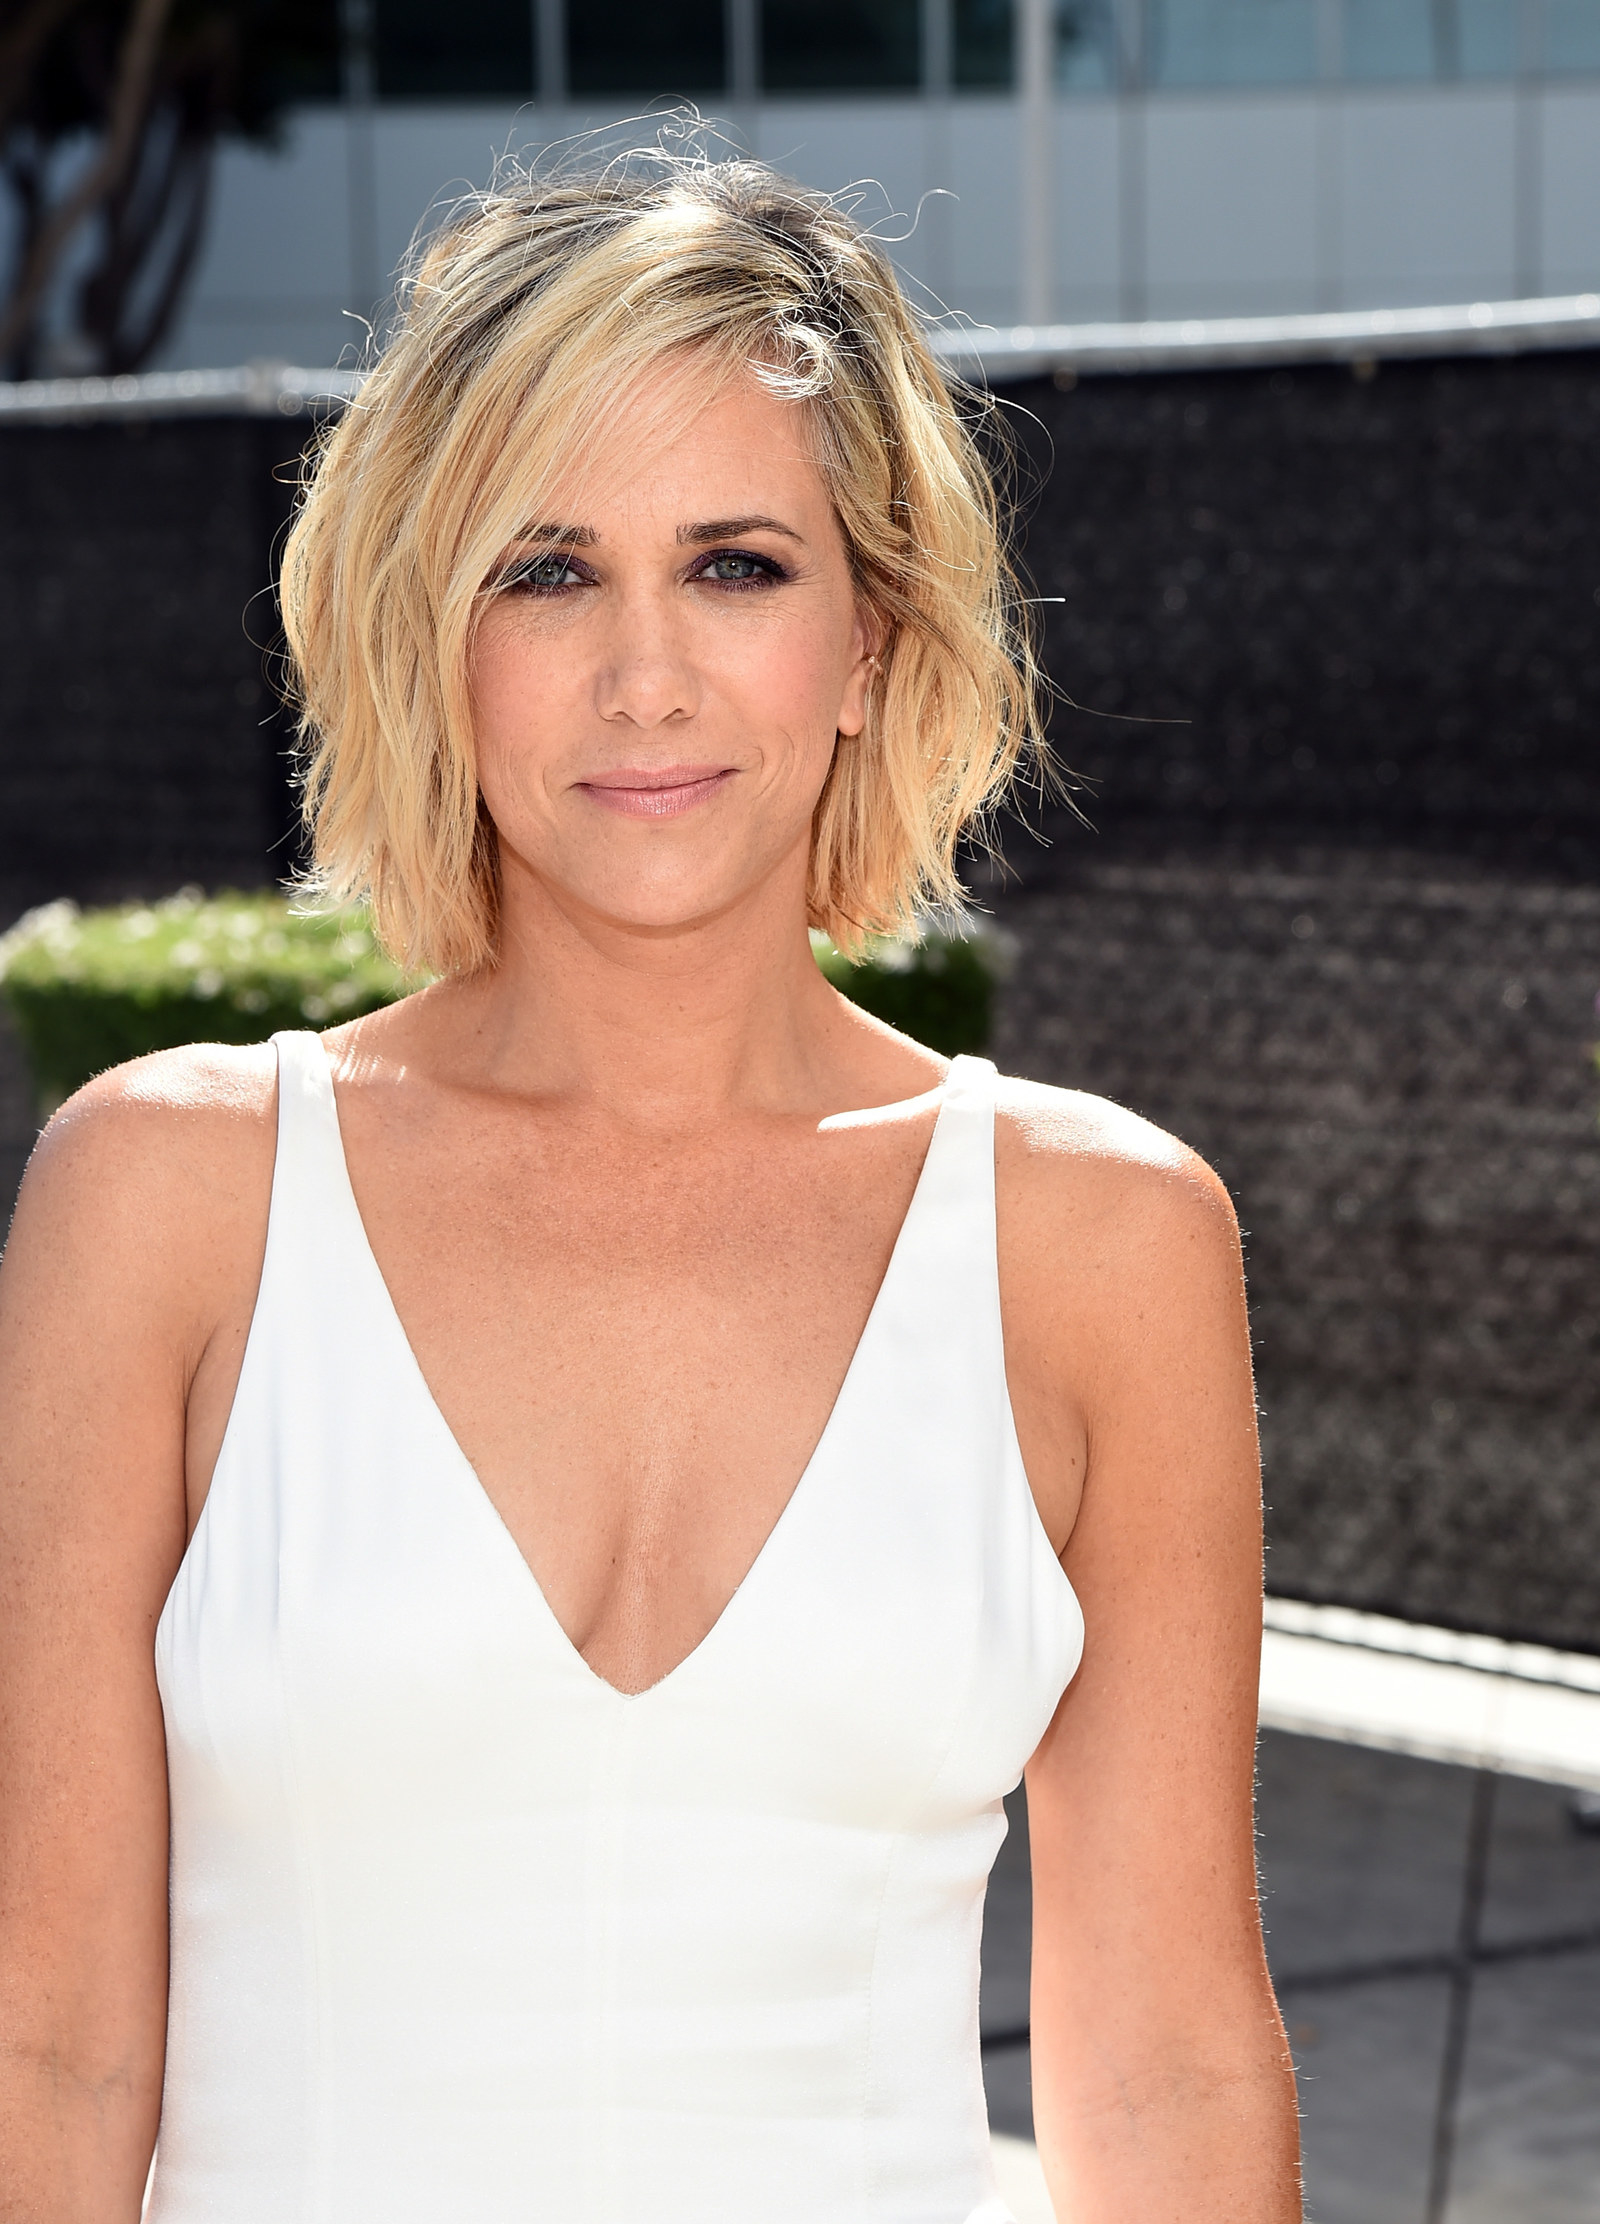 Images Kristen Wiig naked (58 photos), Sexy, Hot, Selfie, panties 2015